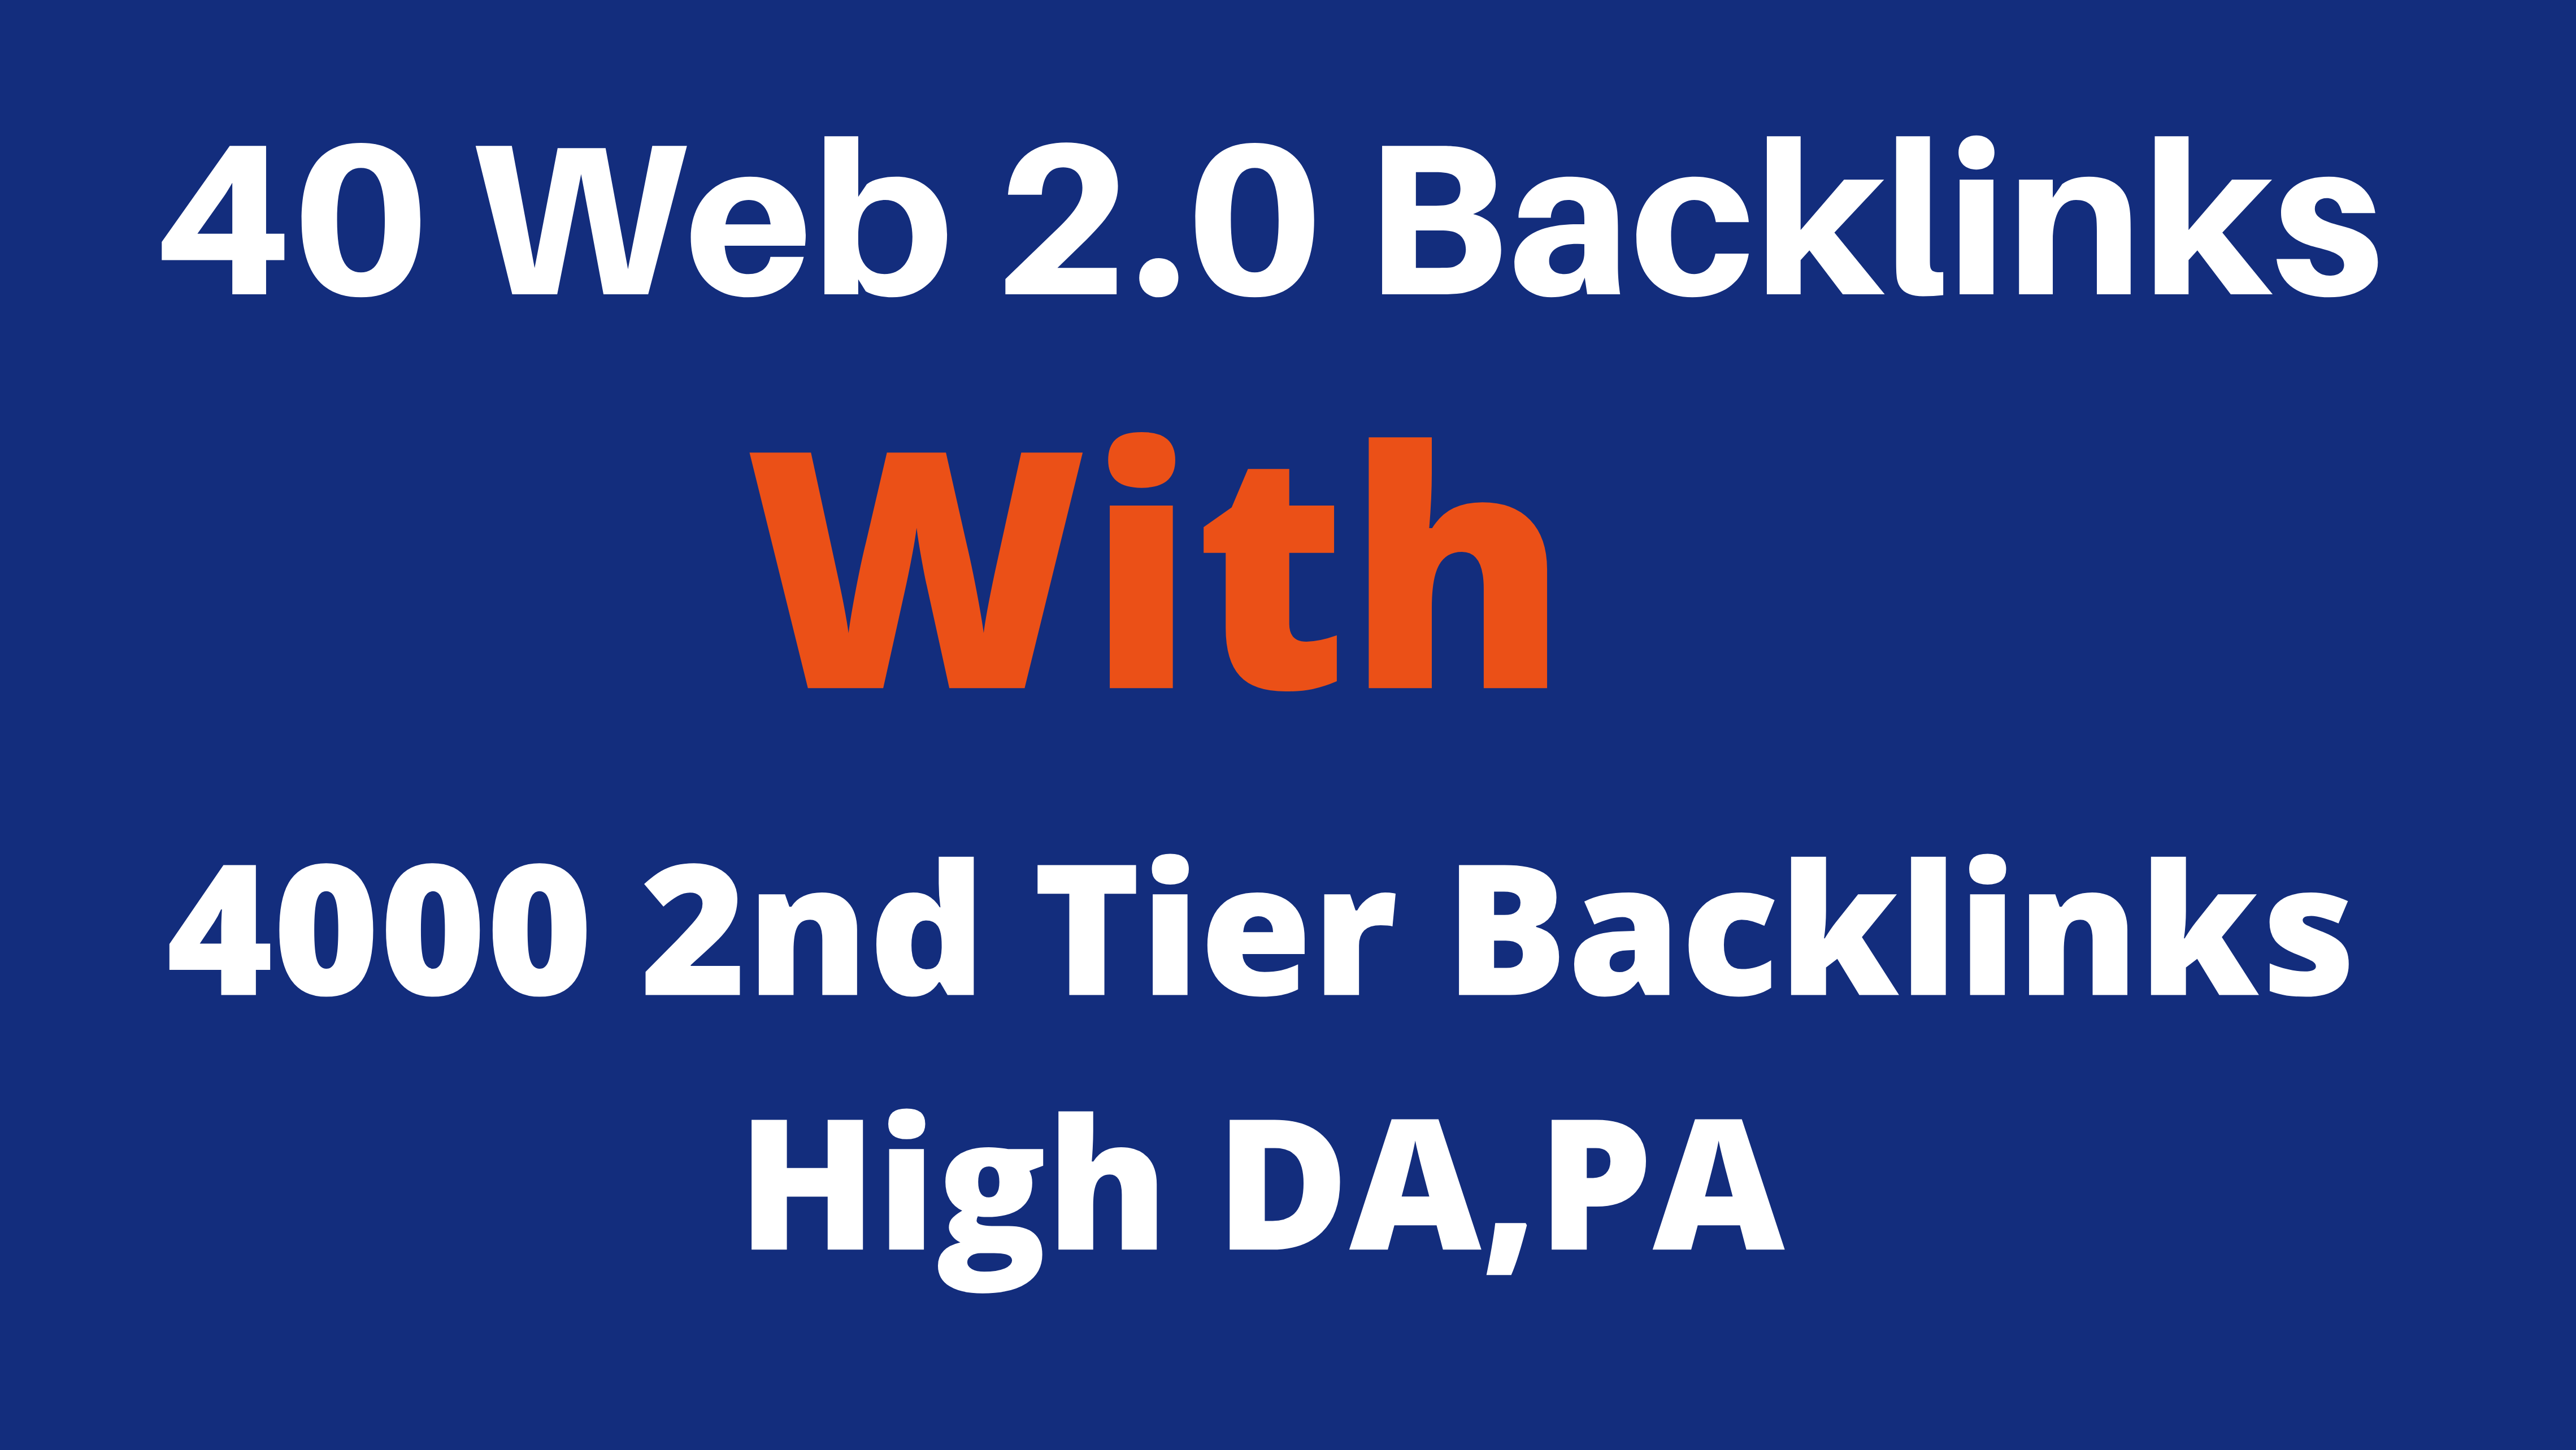 40 Web 2.0 Blog With 4000 2nd Tier Backlinks High DA, PA